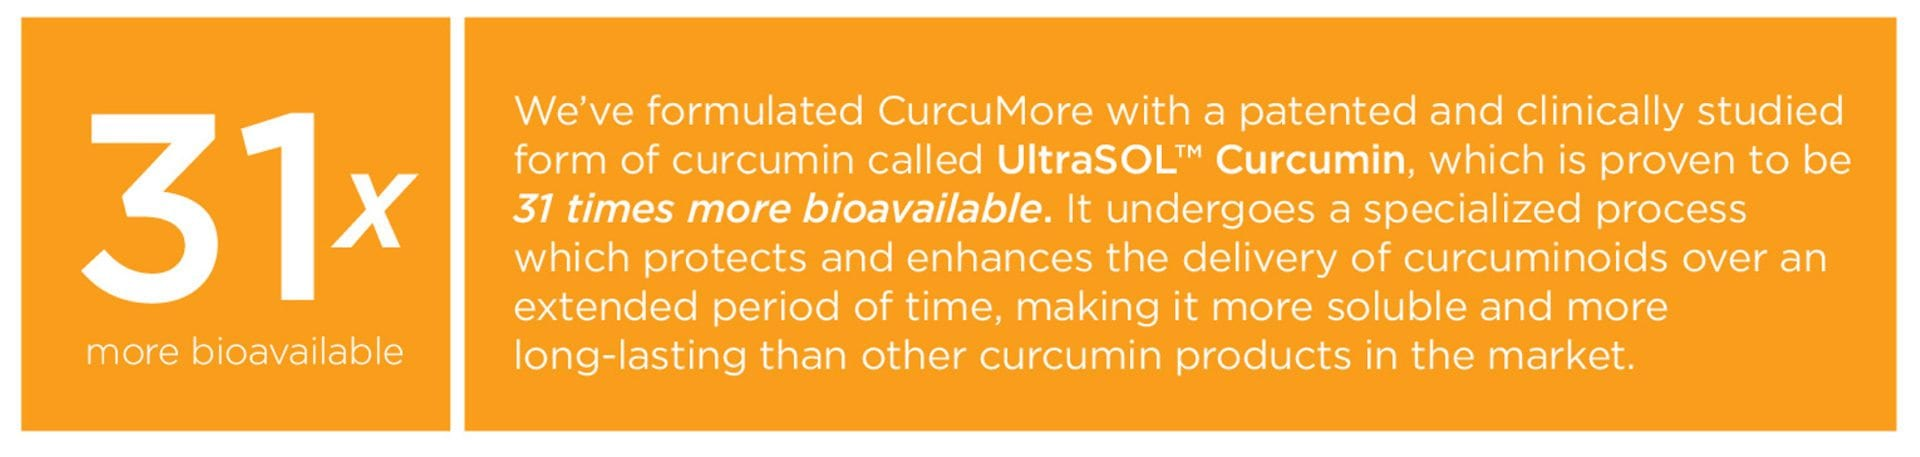 CurcuMore | Powerful Curcumin Supplement